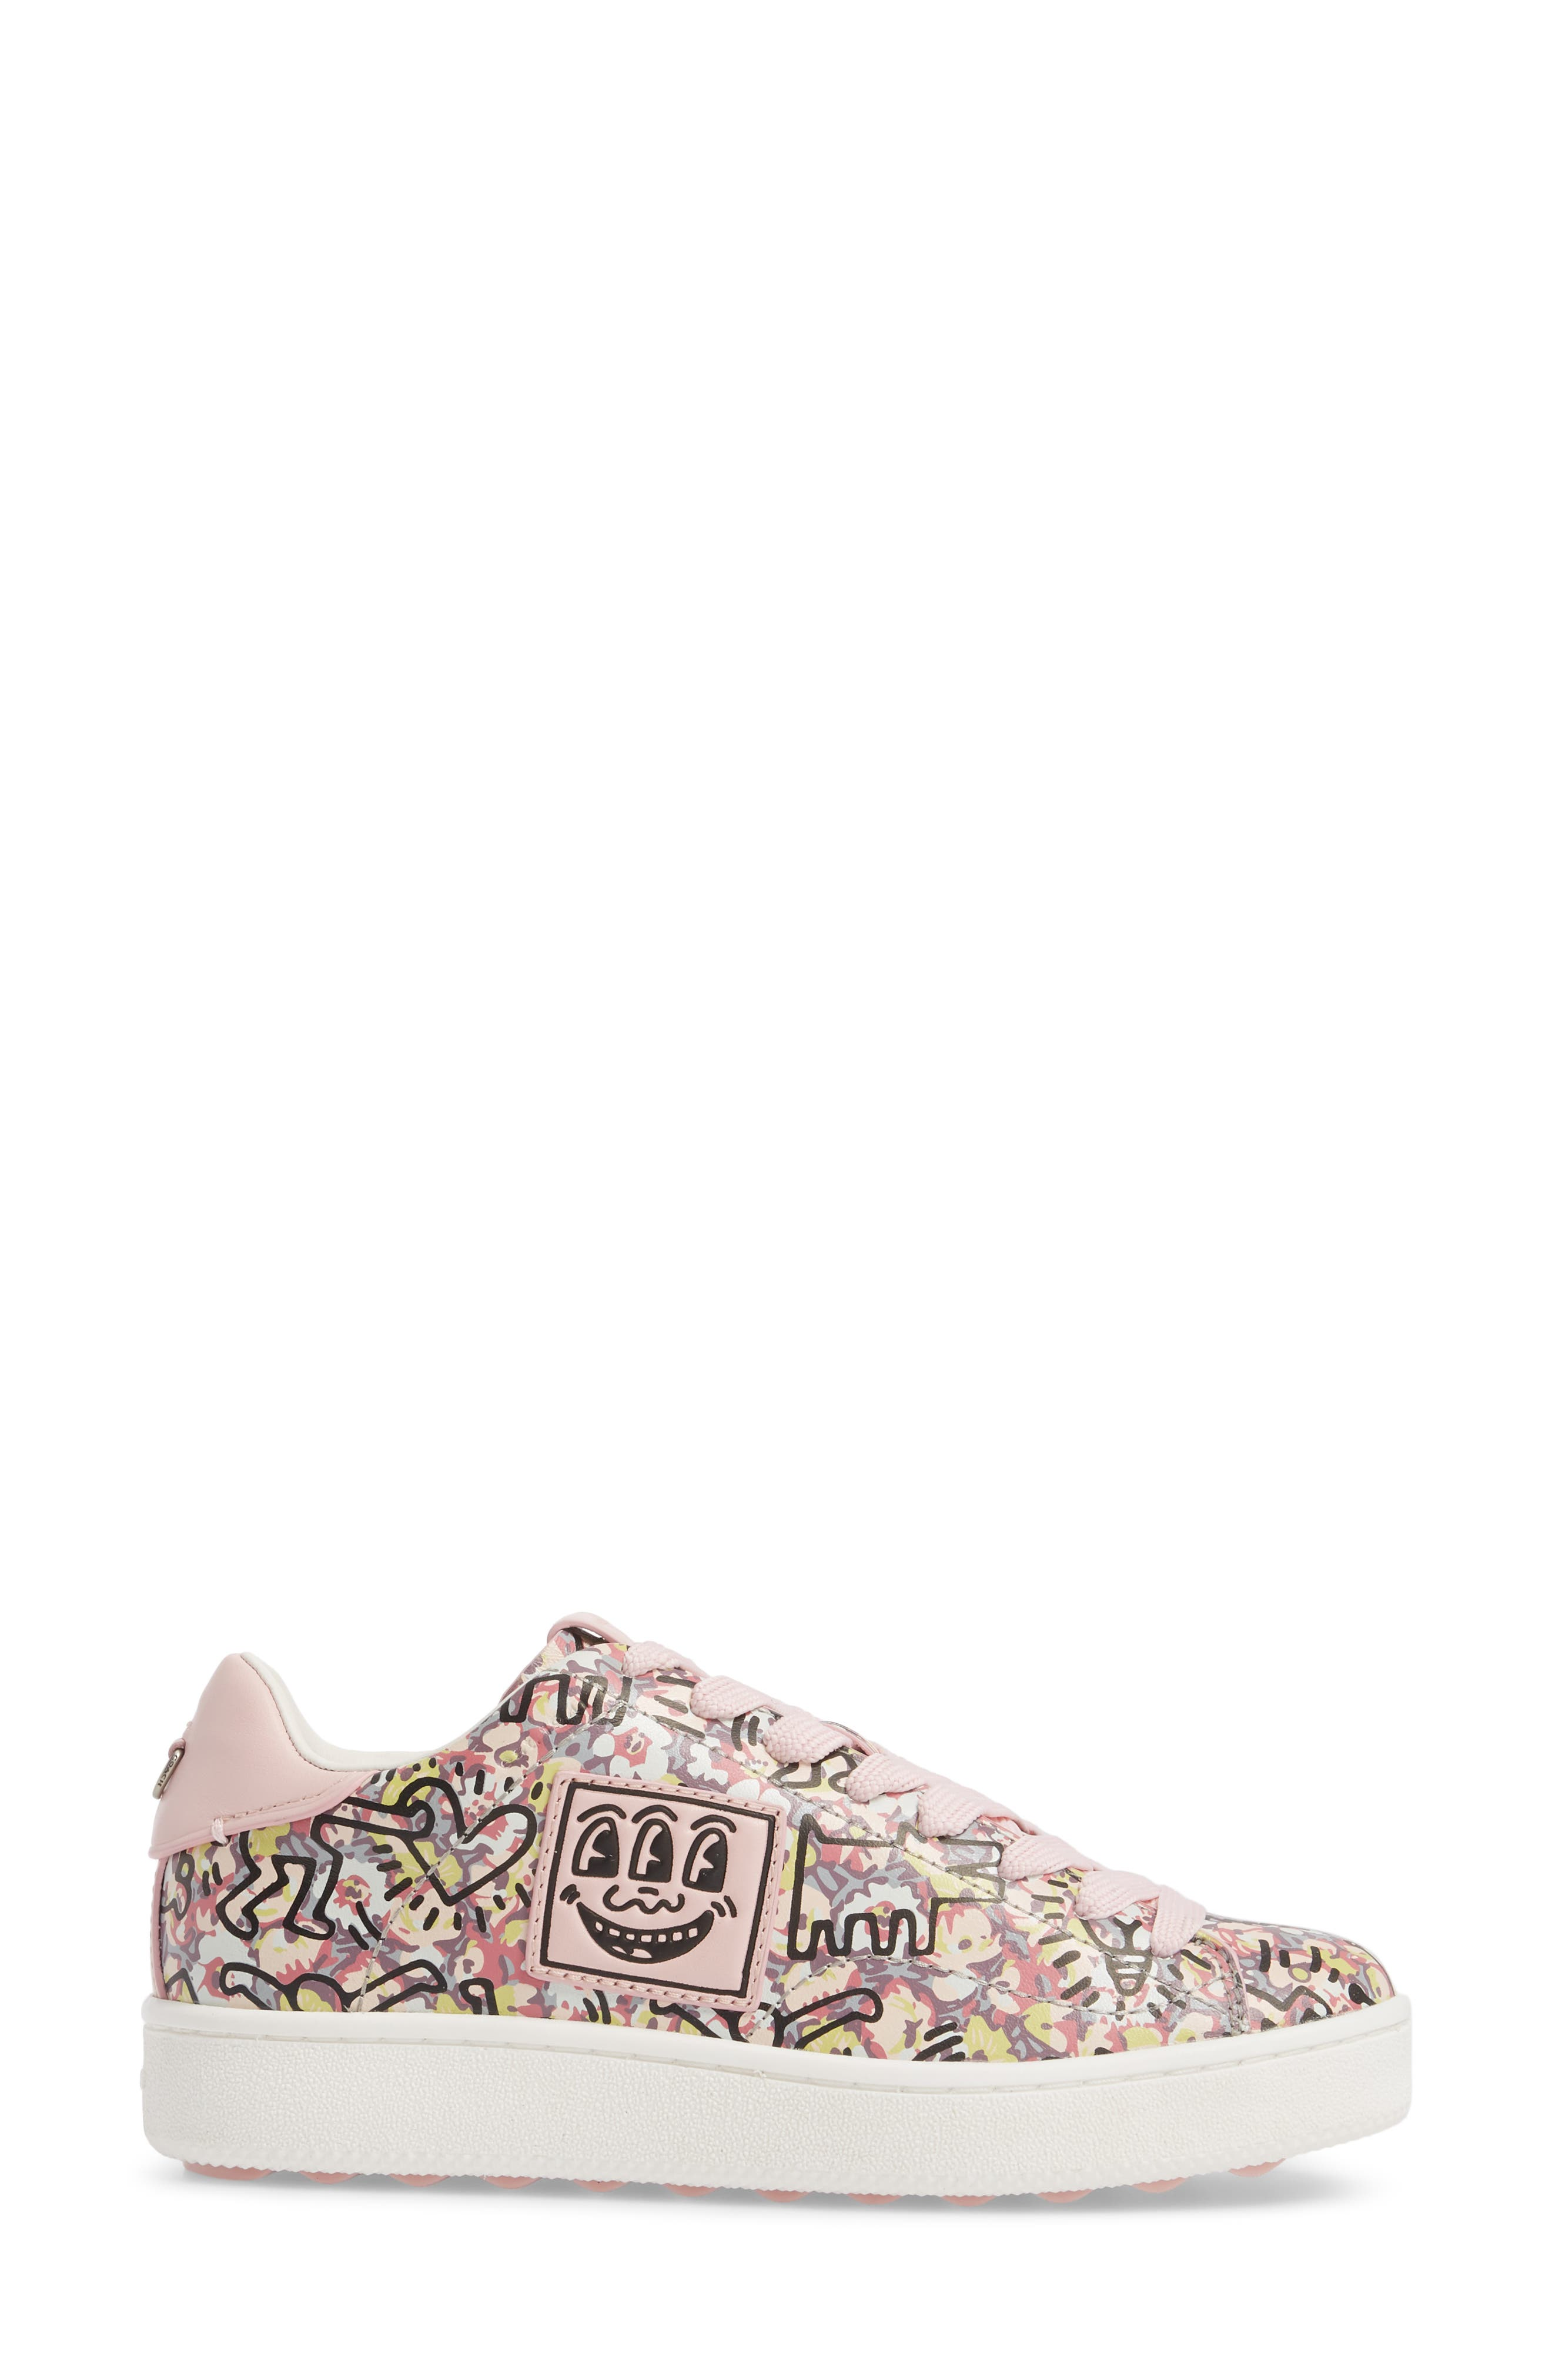 x Keith Haring Low Top Sneaker,                             Alternate thumbnail 3, color,                             674